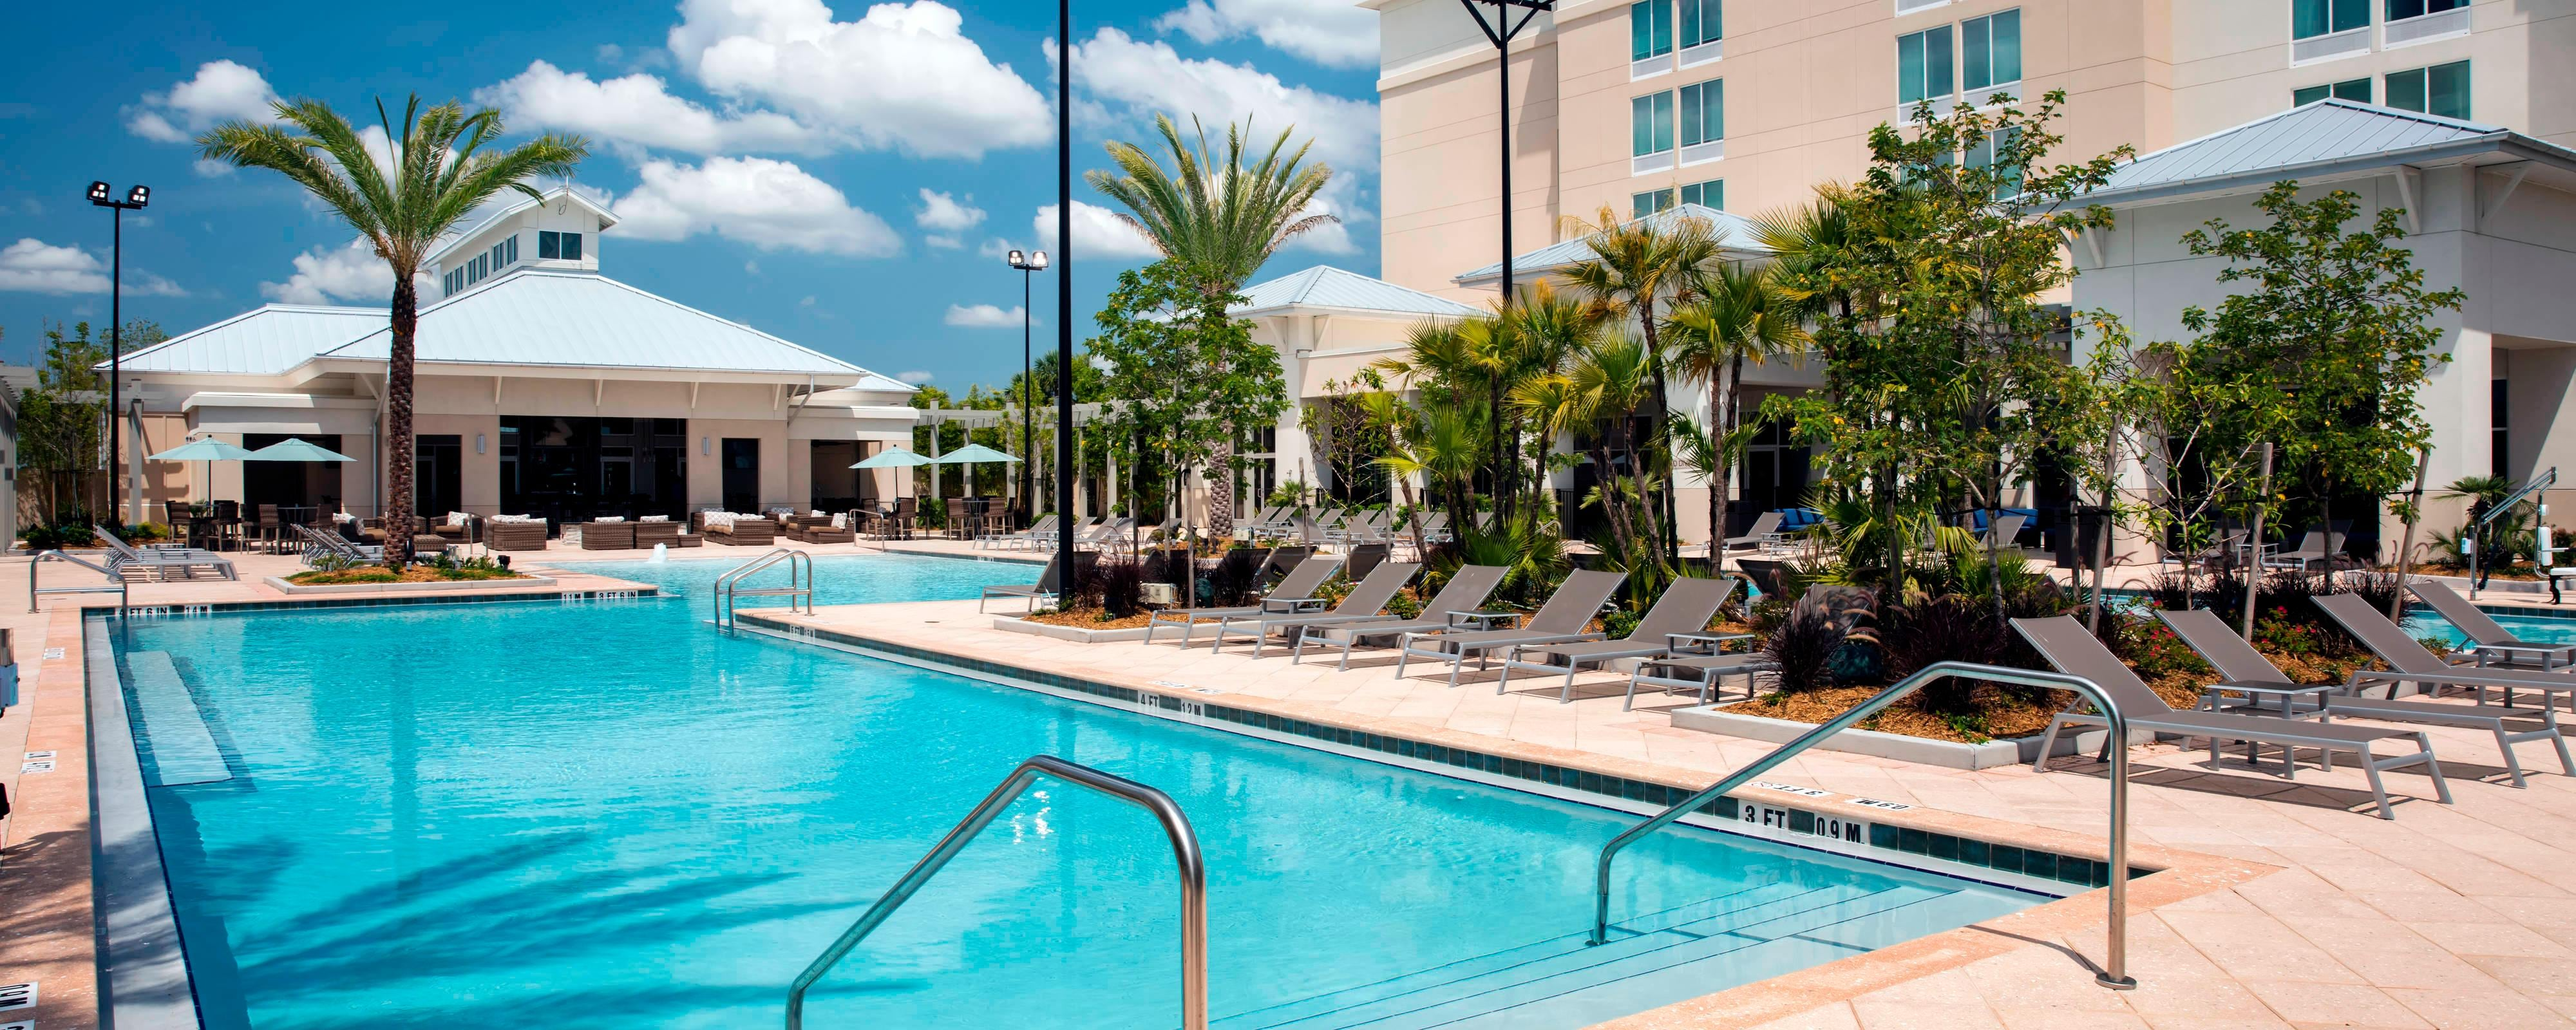 Flamingo Pool Dates Hotel With Pool In Winter Garden Fl Springhill Suites